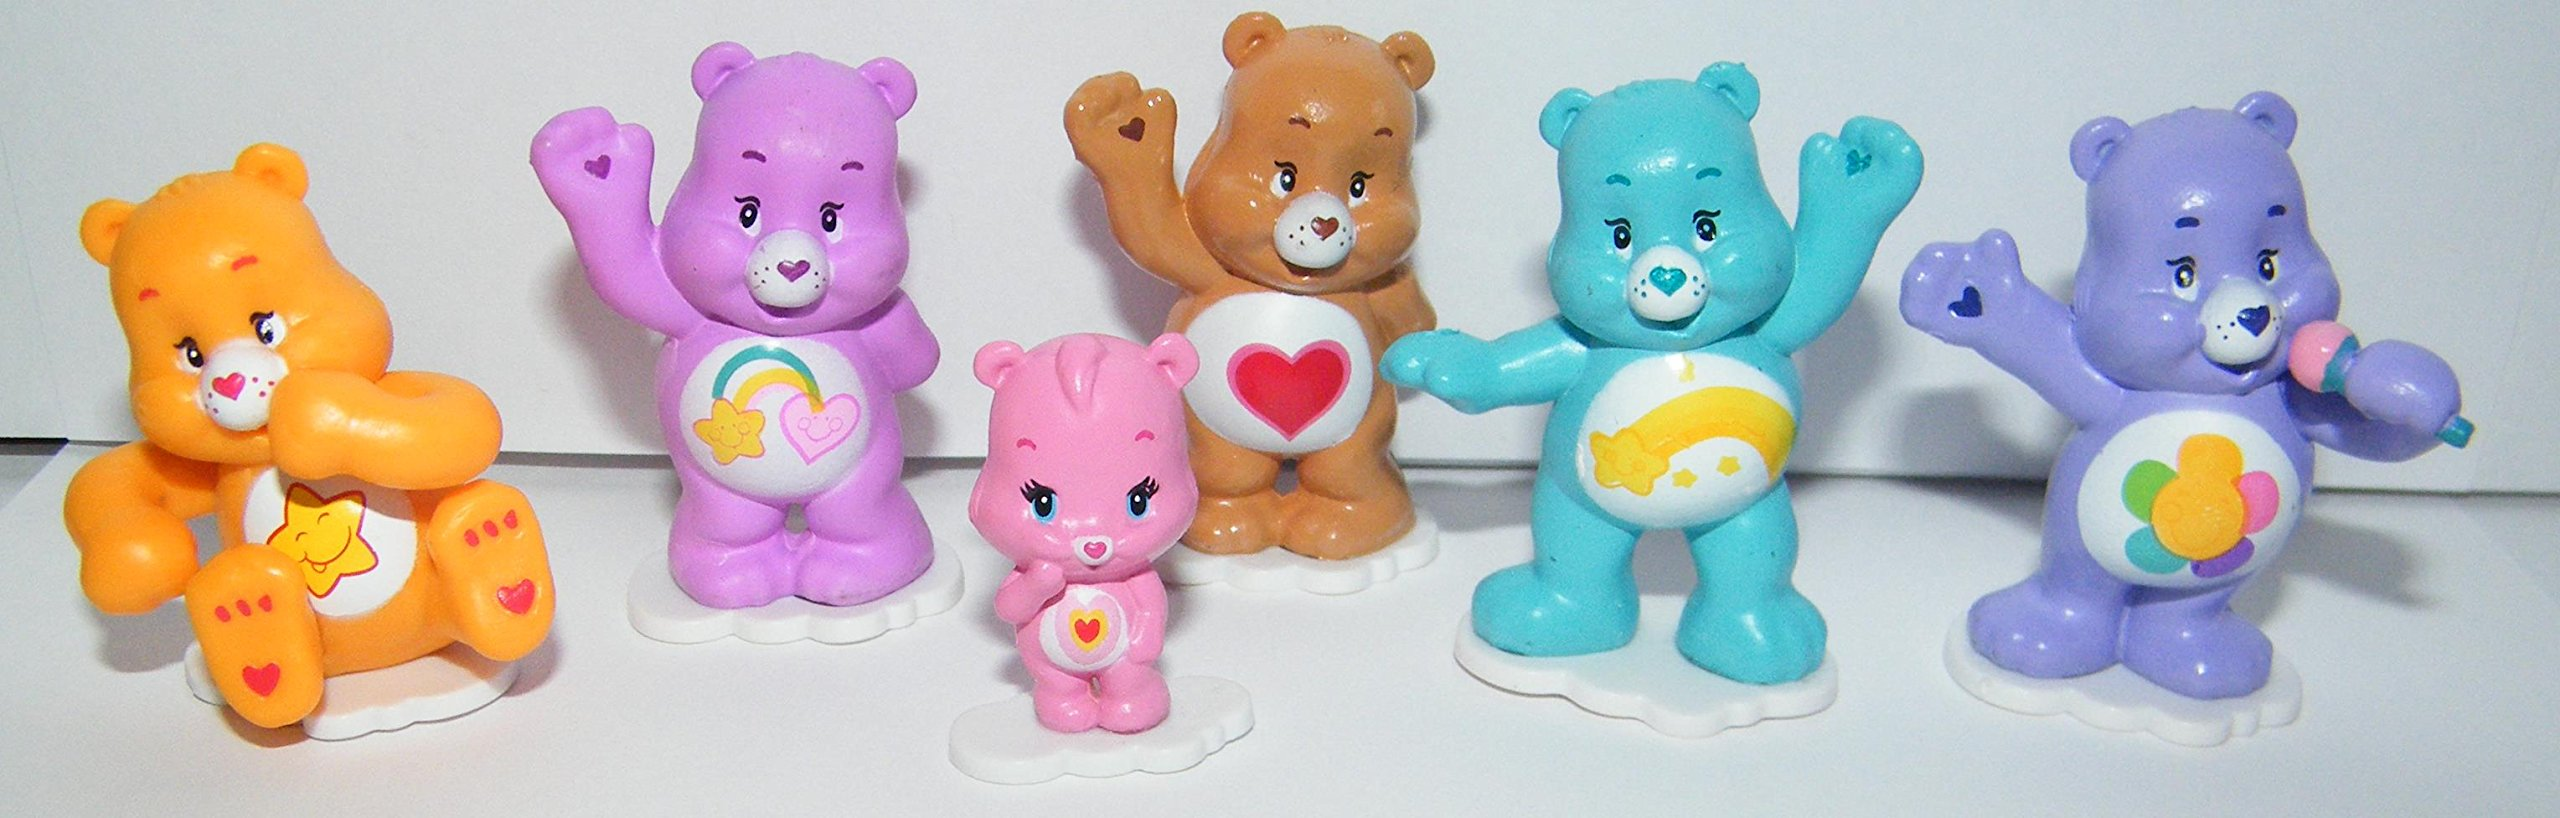 Care Bears Cupcake Topper Birthday Party Decorations Set of 12 Figures with Share Bear, Wonderheart Bear, Grumpy Bear, Wish Bear and Many More! by Care Bears (Image #5)